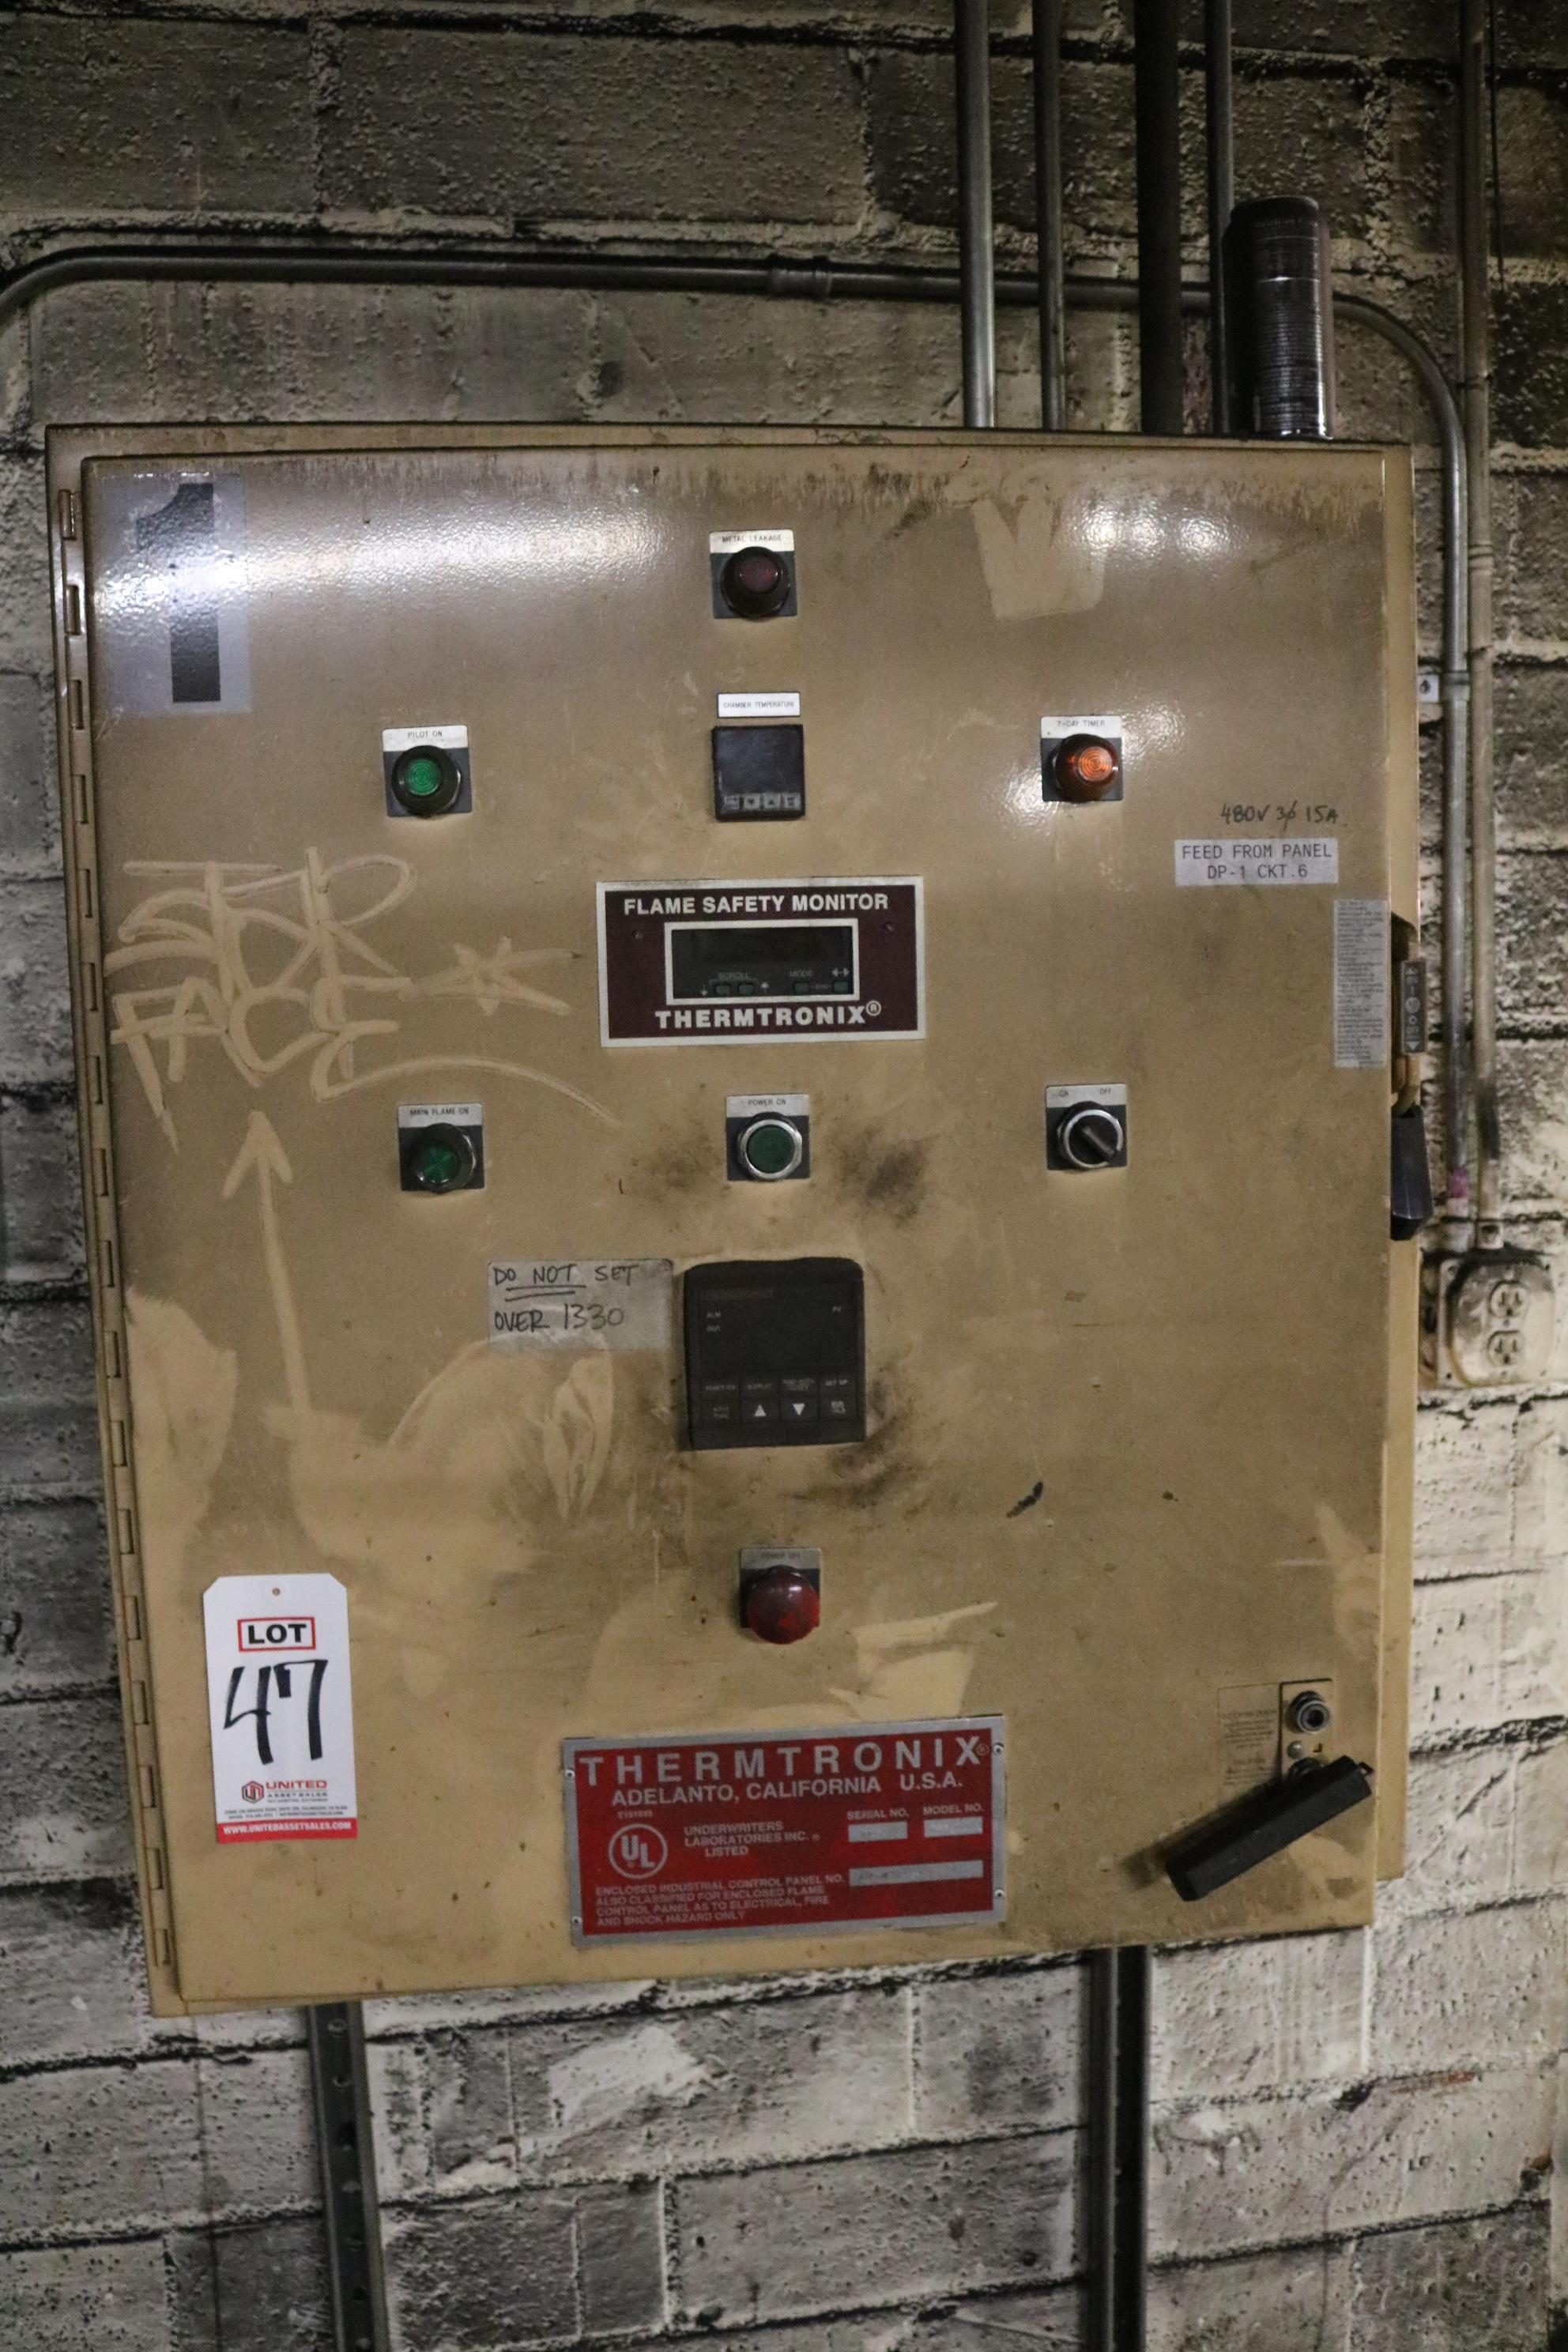 Lot 47 - 2001 THERMTRONIX MODEL GS900 900 LB GAS FIRED MELTING FURNACE, GAS SYSTEM AND CONTROLS, S/N 011659